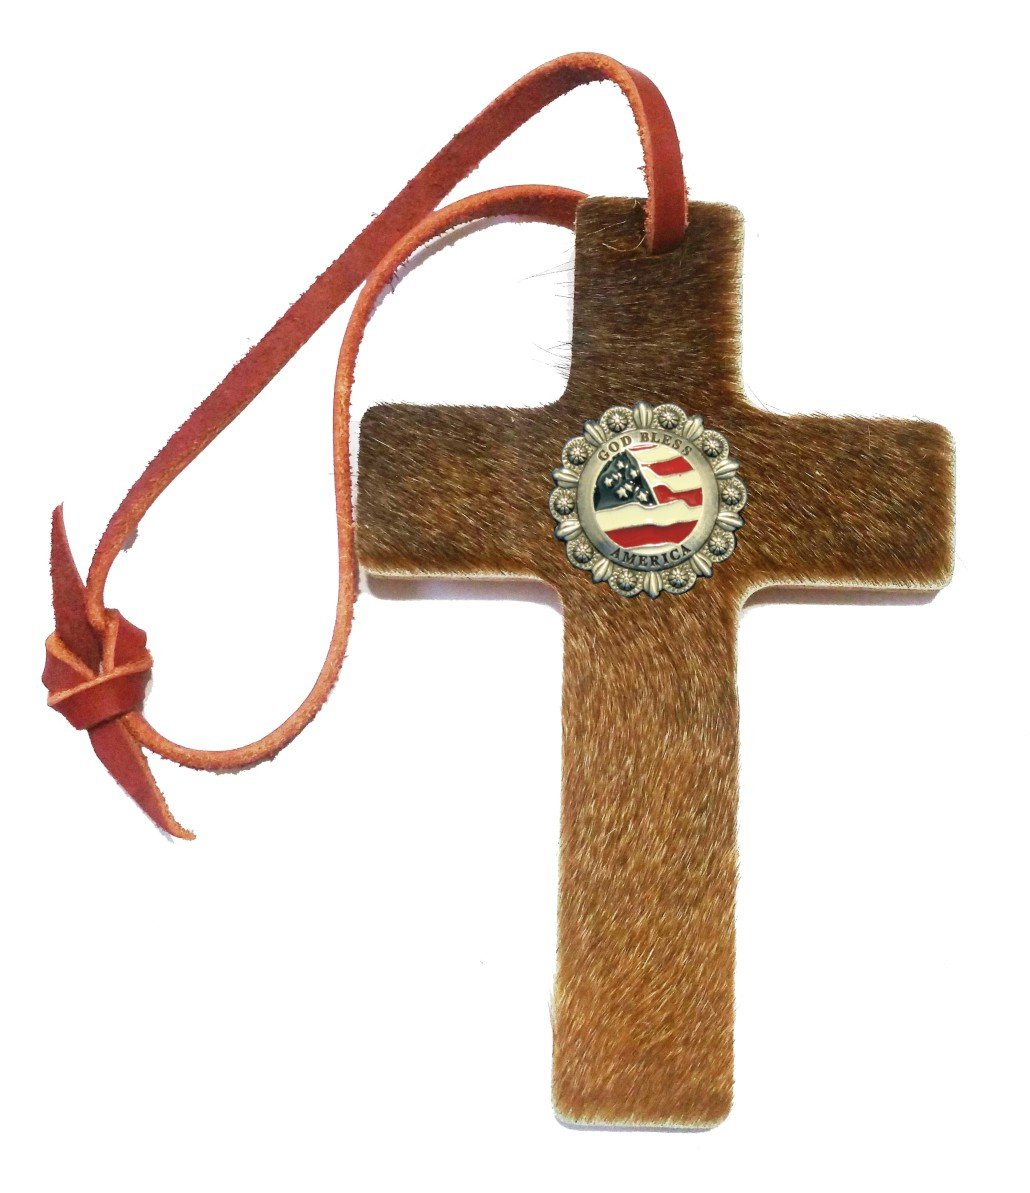 Custom God Bless America Hair on Hide Leather Saddle Cross. Made in Texas by Texans